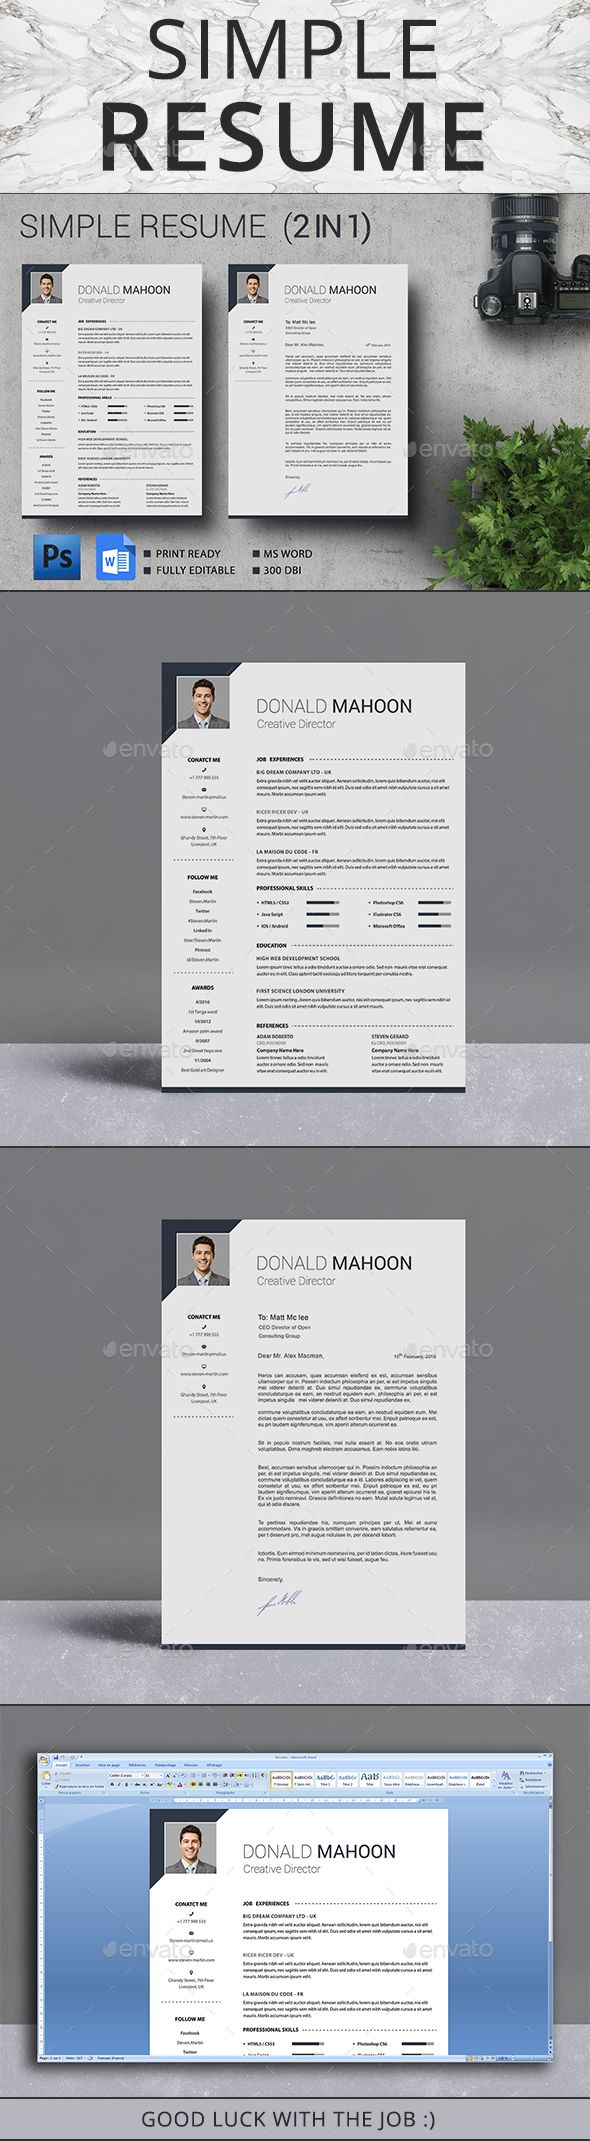 Resume by logotex Resume is the super clean, professional and simple resume cv template to help you land that great job. The flexible page designs